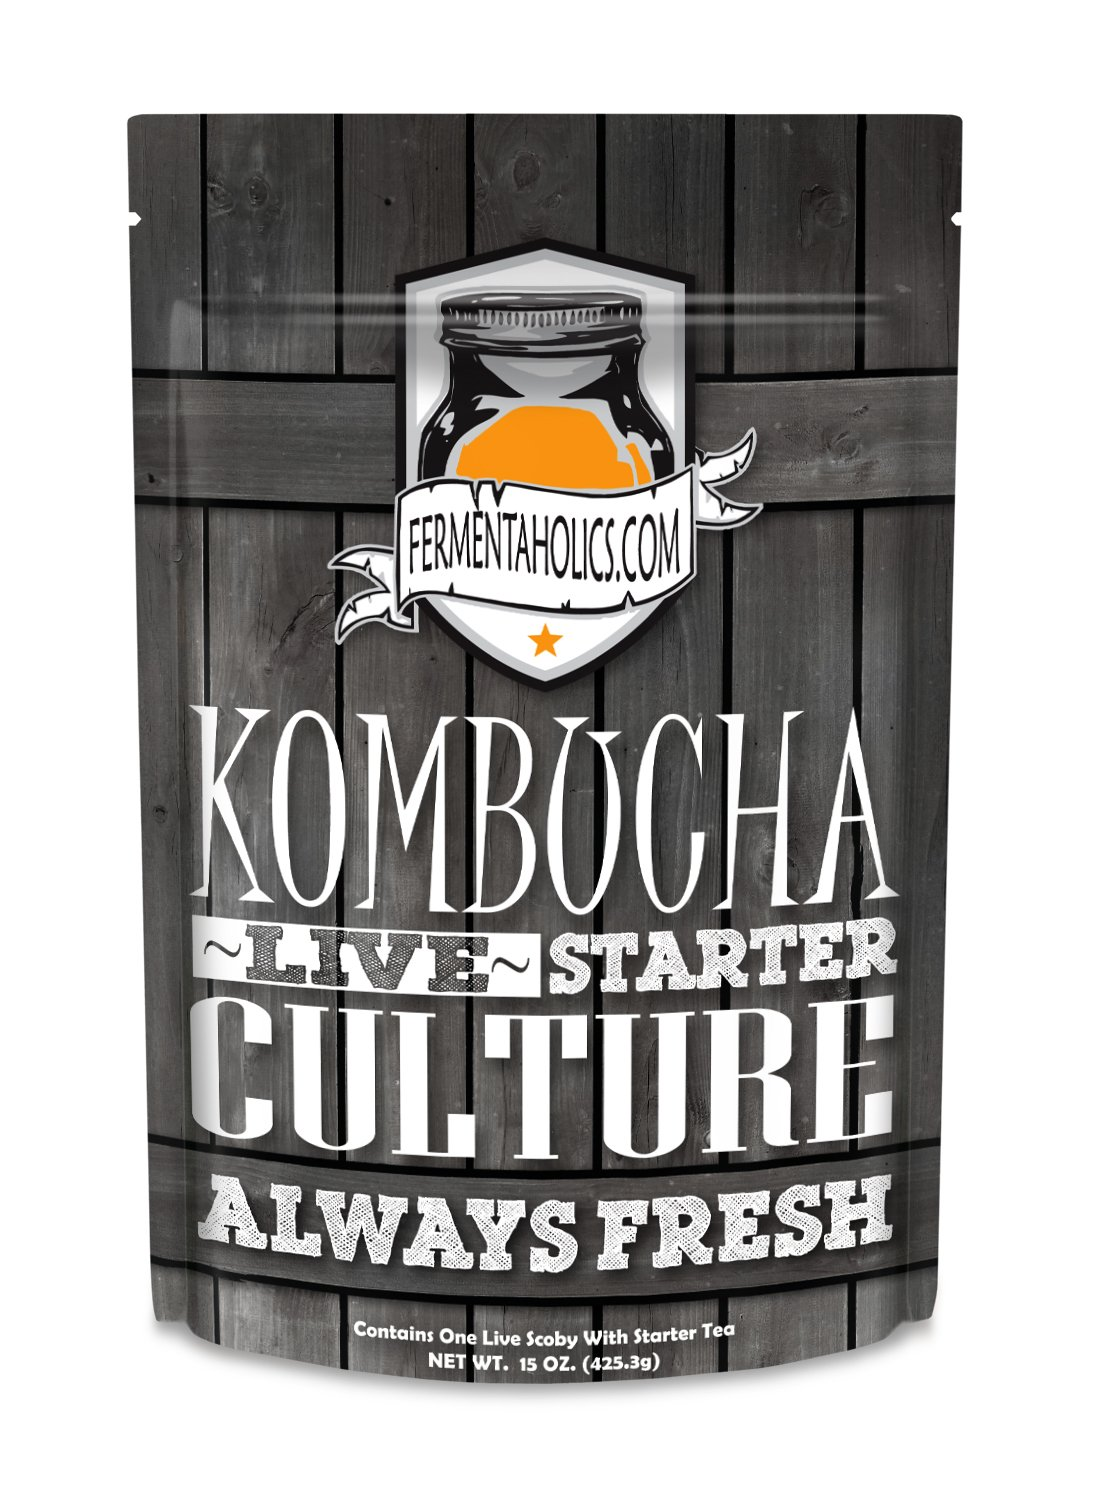 Fermentaholics Kombucha SCOBY (starter culture) + 1-Gallon Glass Fermenting Jar with Breathable Cover + Rubber Band + Adhesive Thermometer - Brew kombucha at Home - Detailed Instructions Included by Fermentaholics (Image #2)